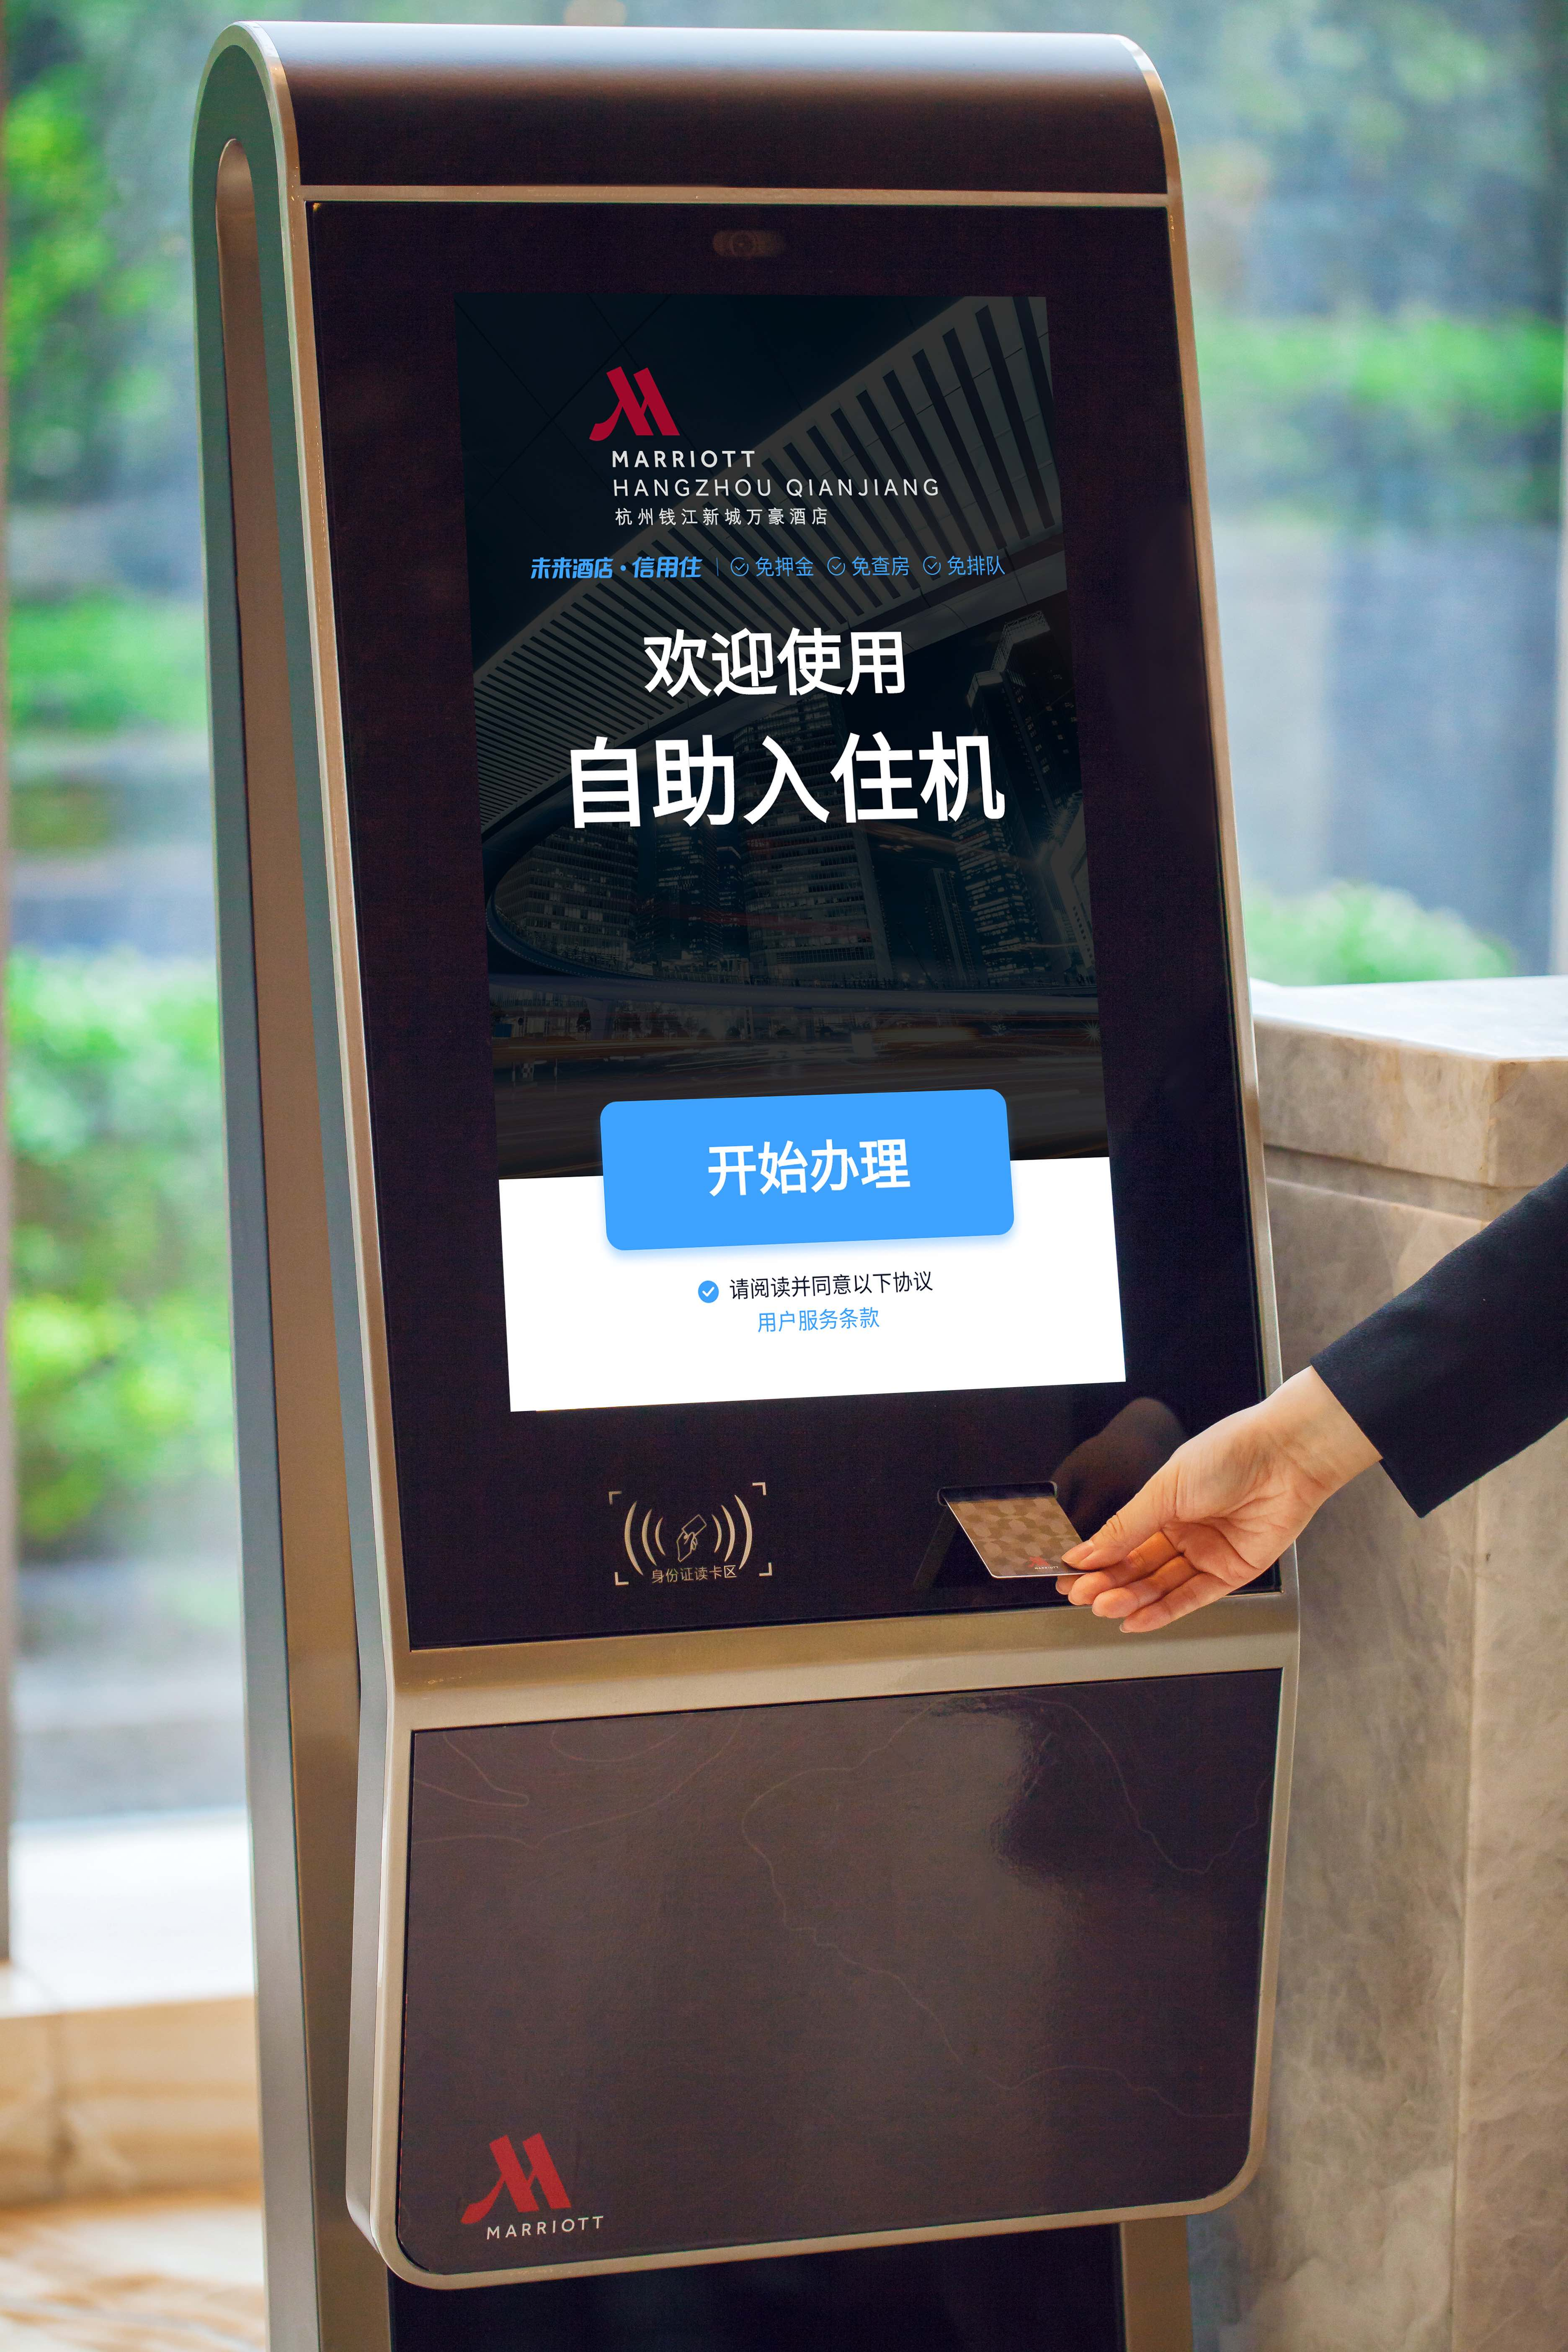 facial recognition check-in technology at marriott international properties in China